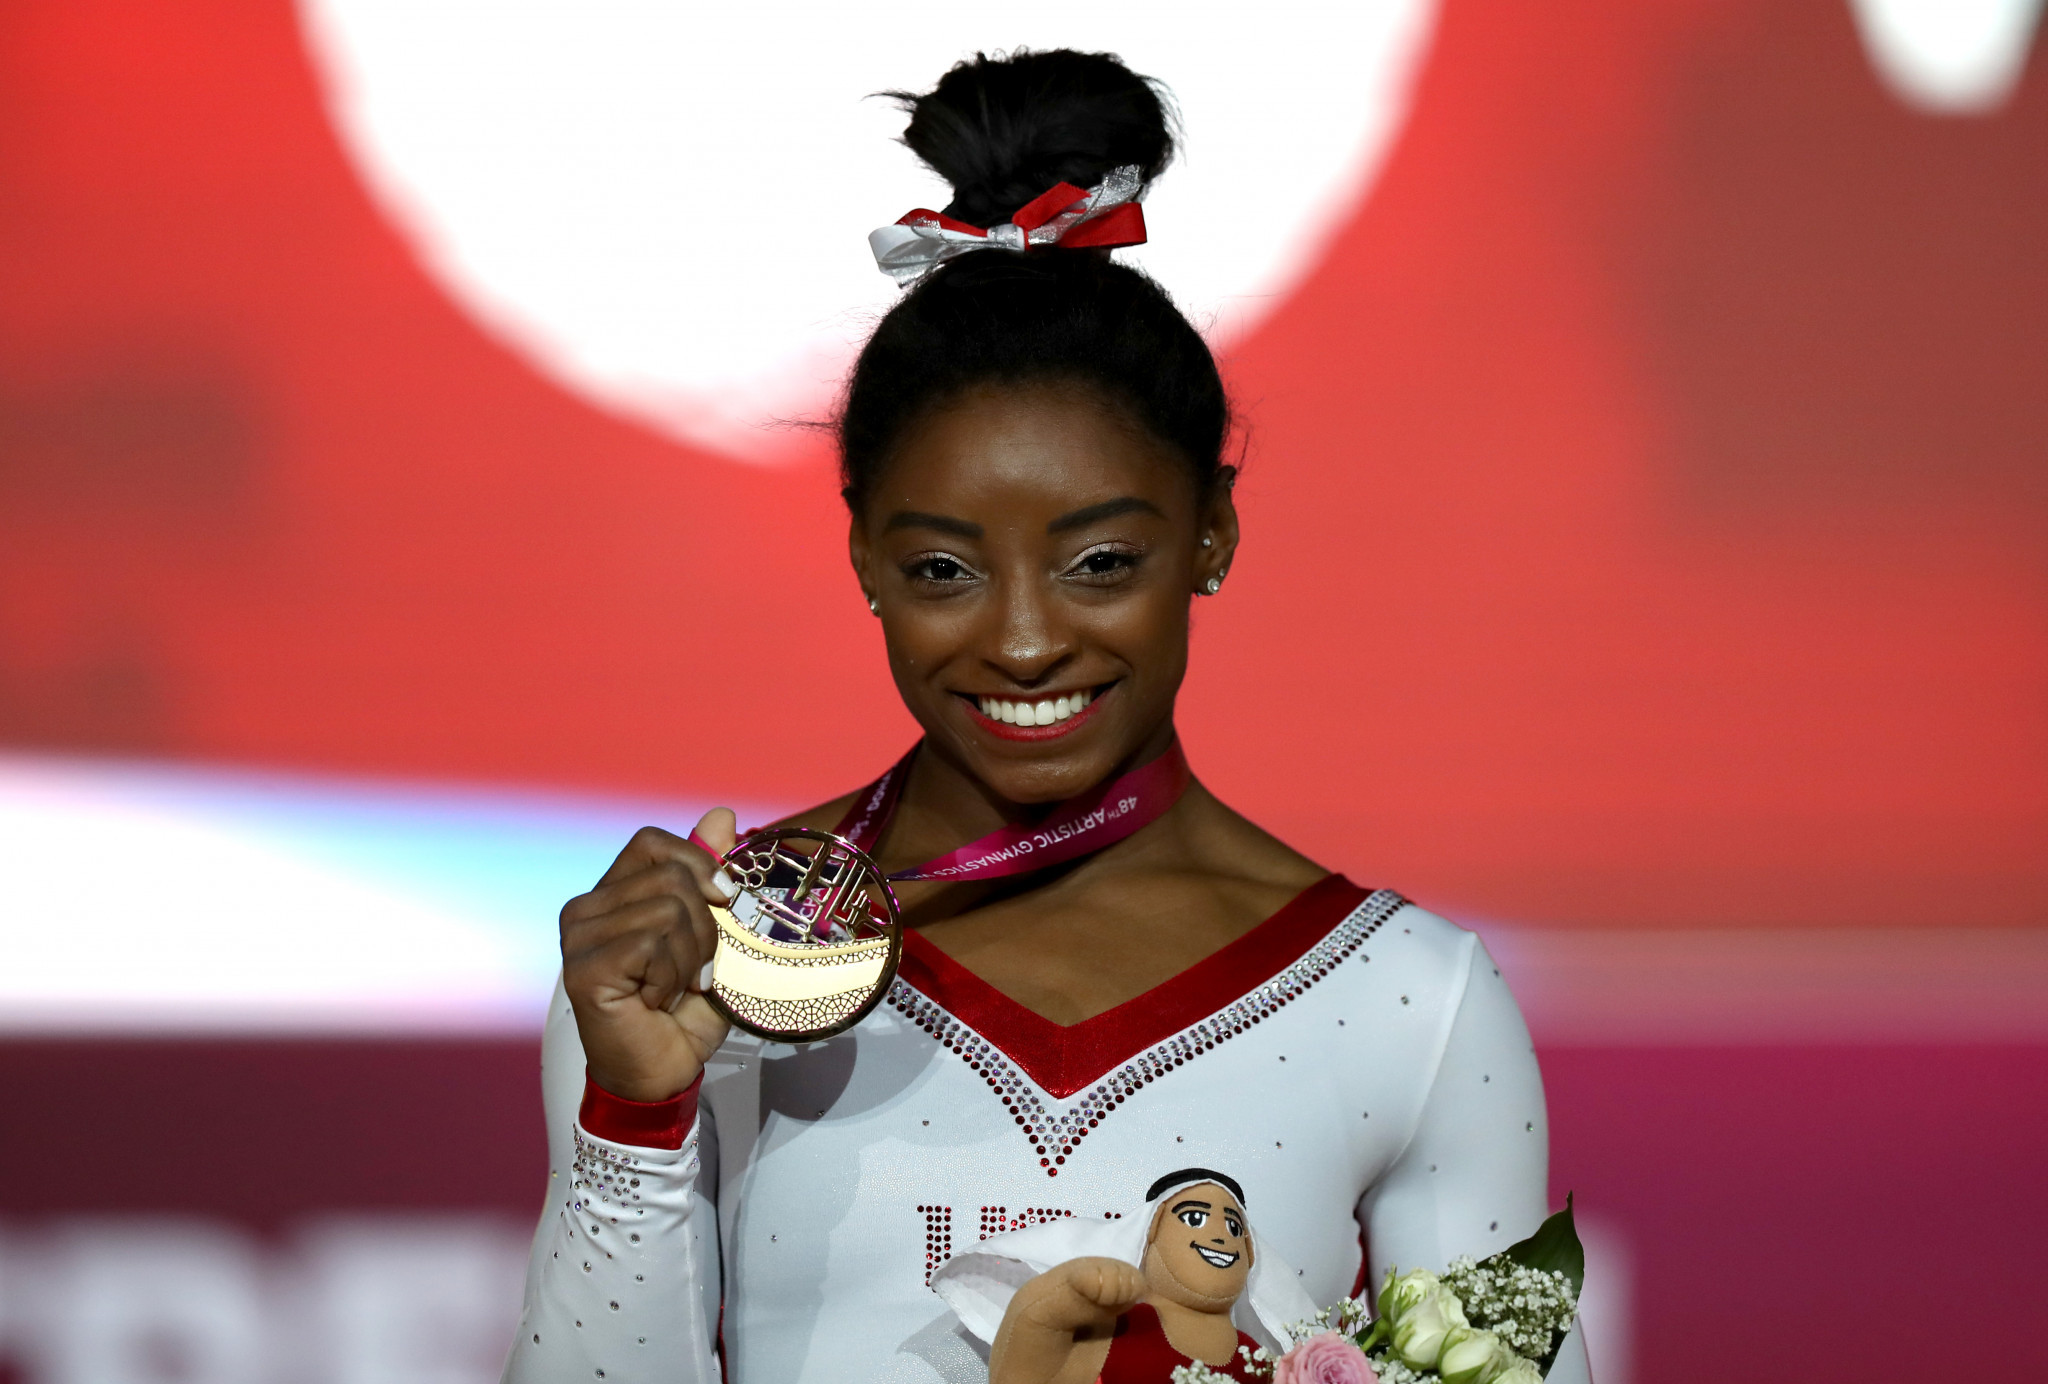 Biles wins record 13th gold medal with vault success at the Artistic Gymnastics World Championships